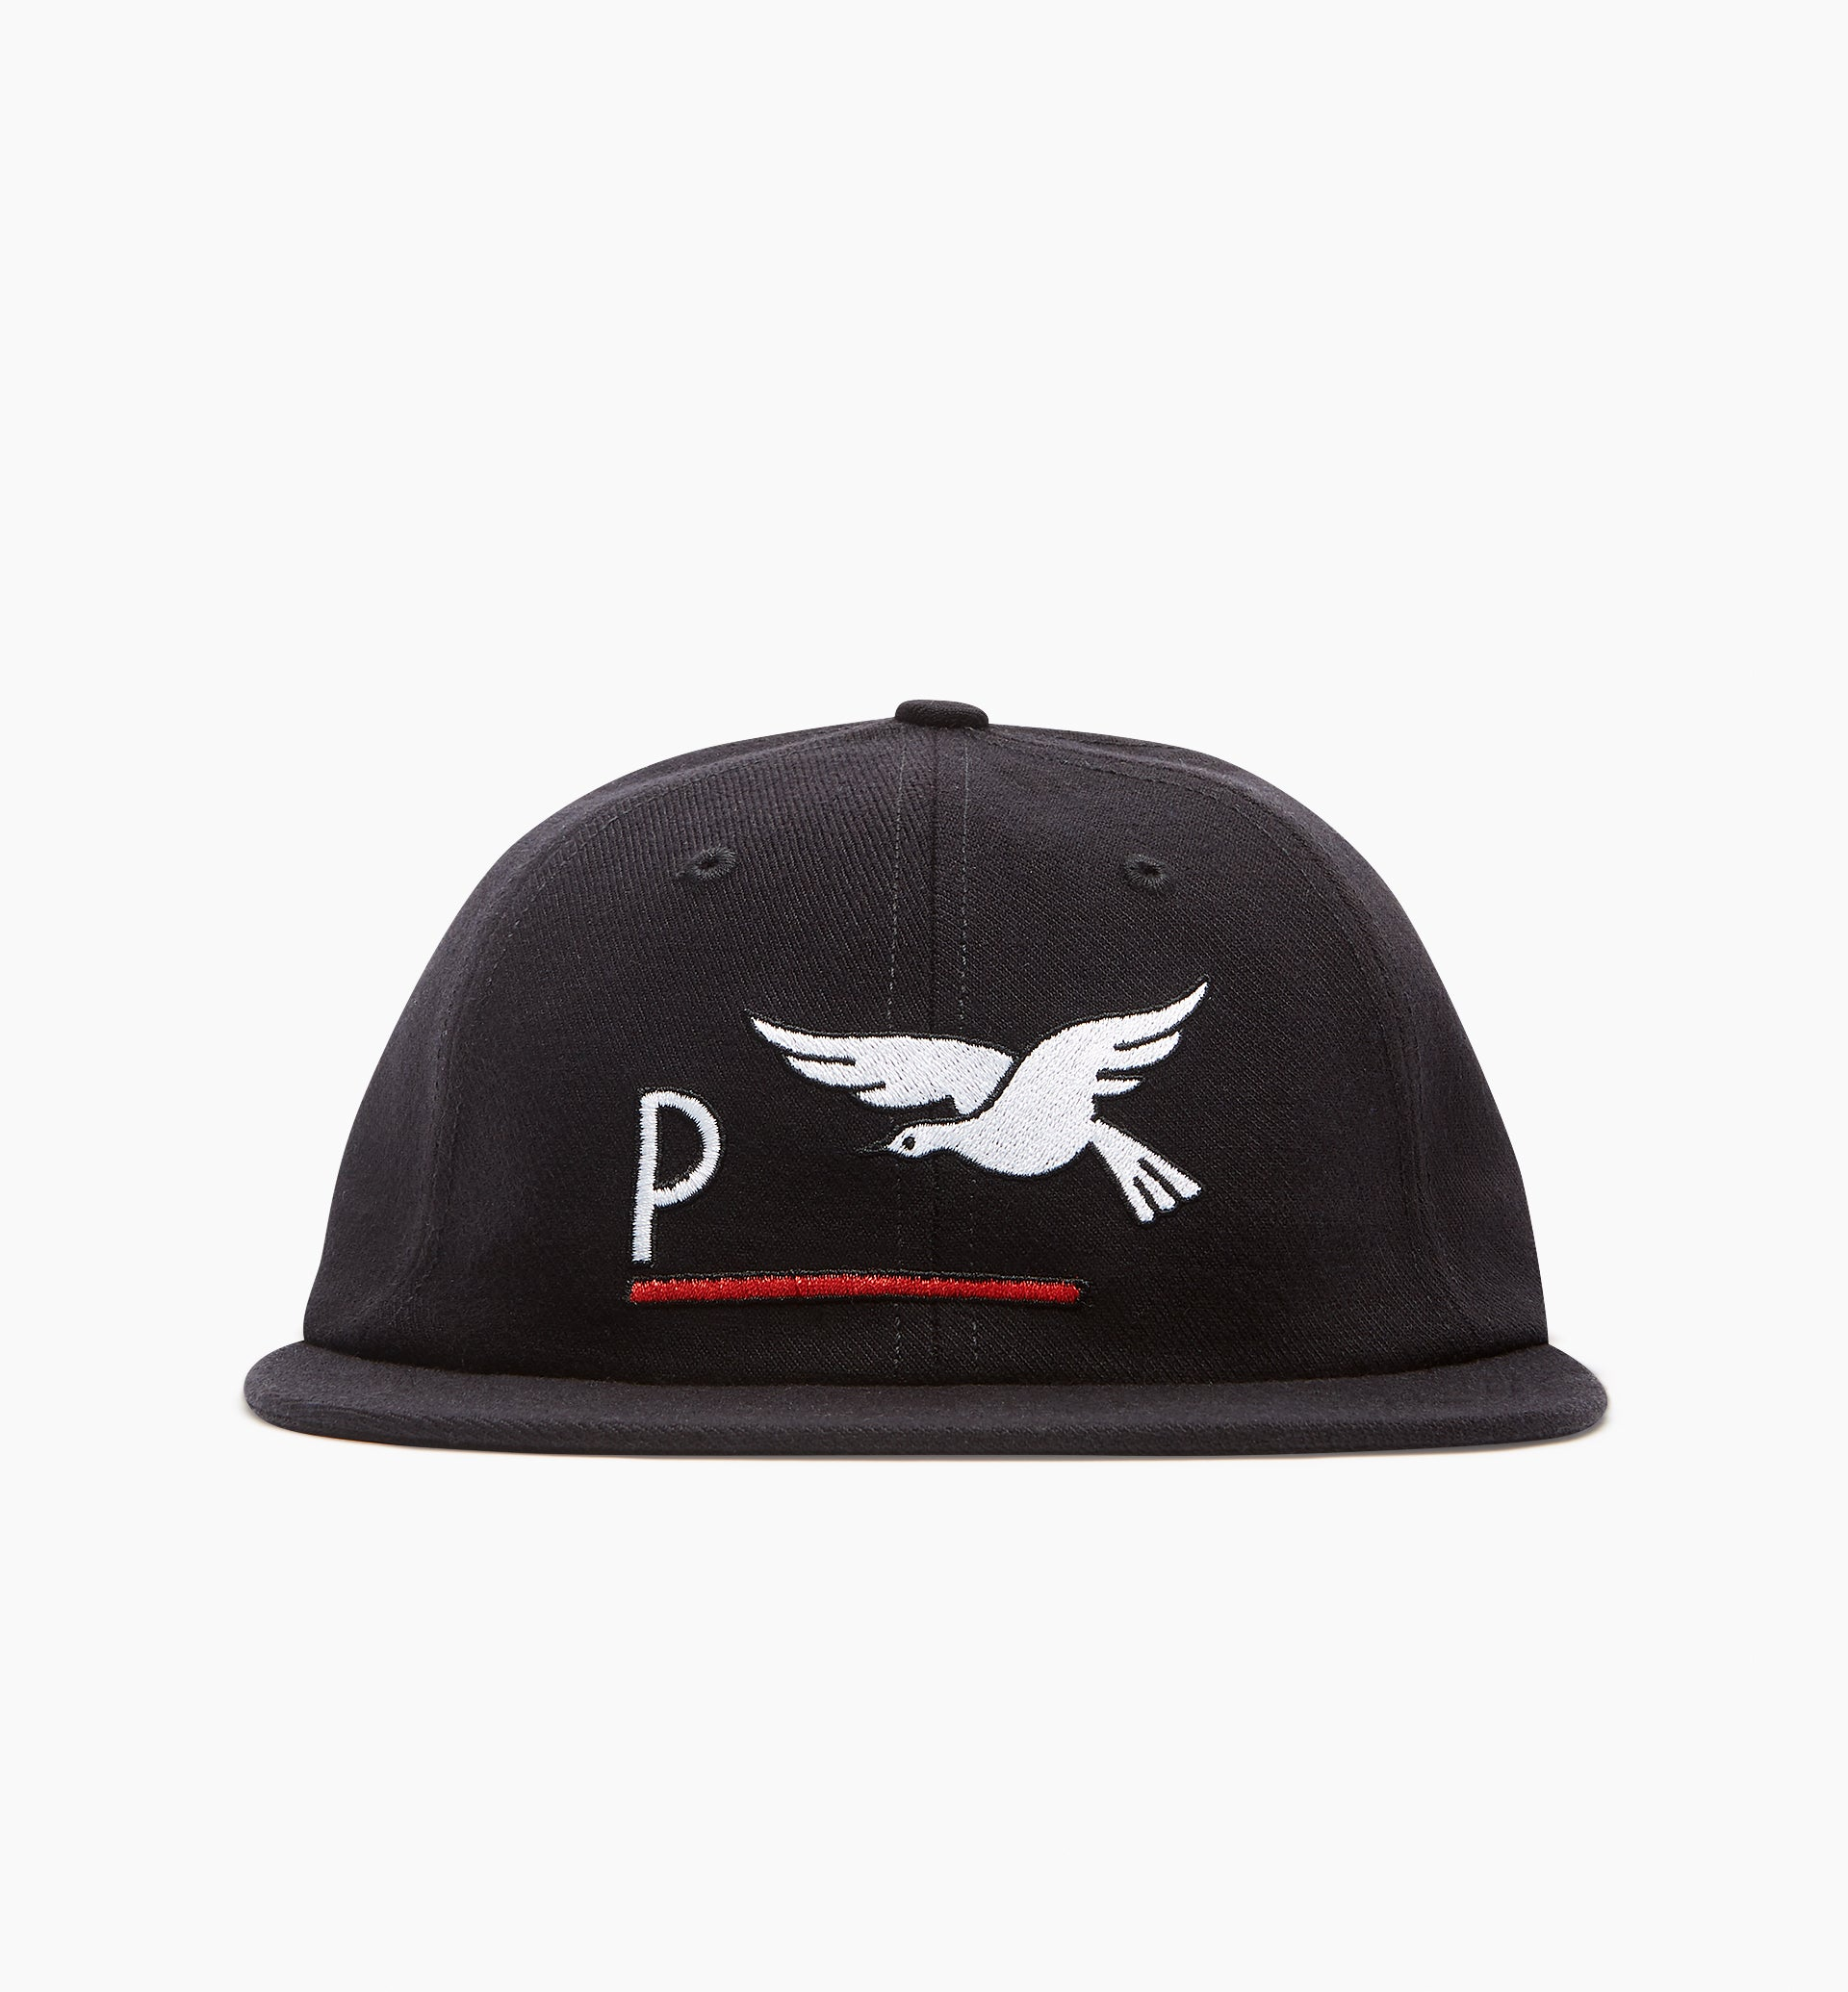 Parra - surprised 6 panel hat